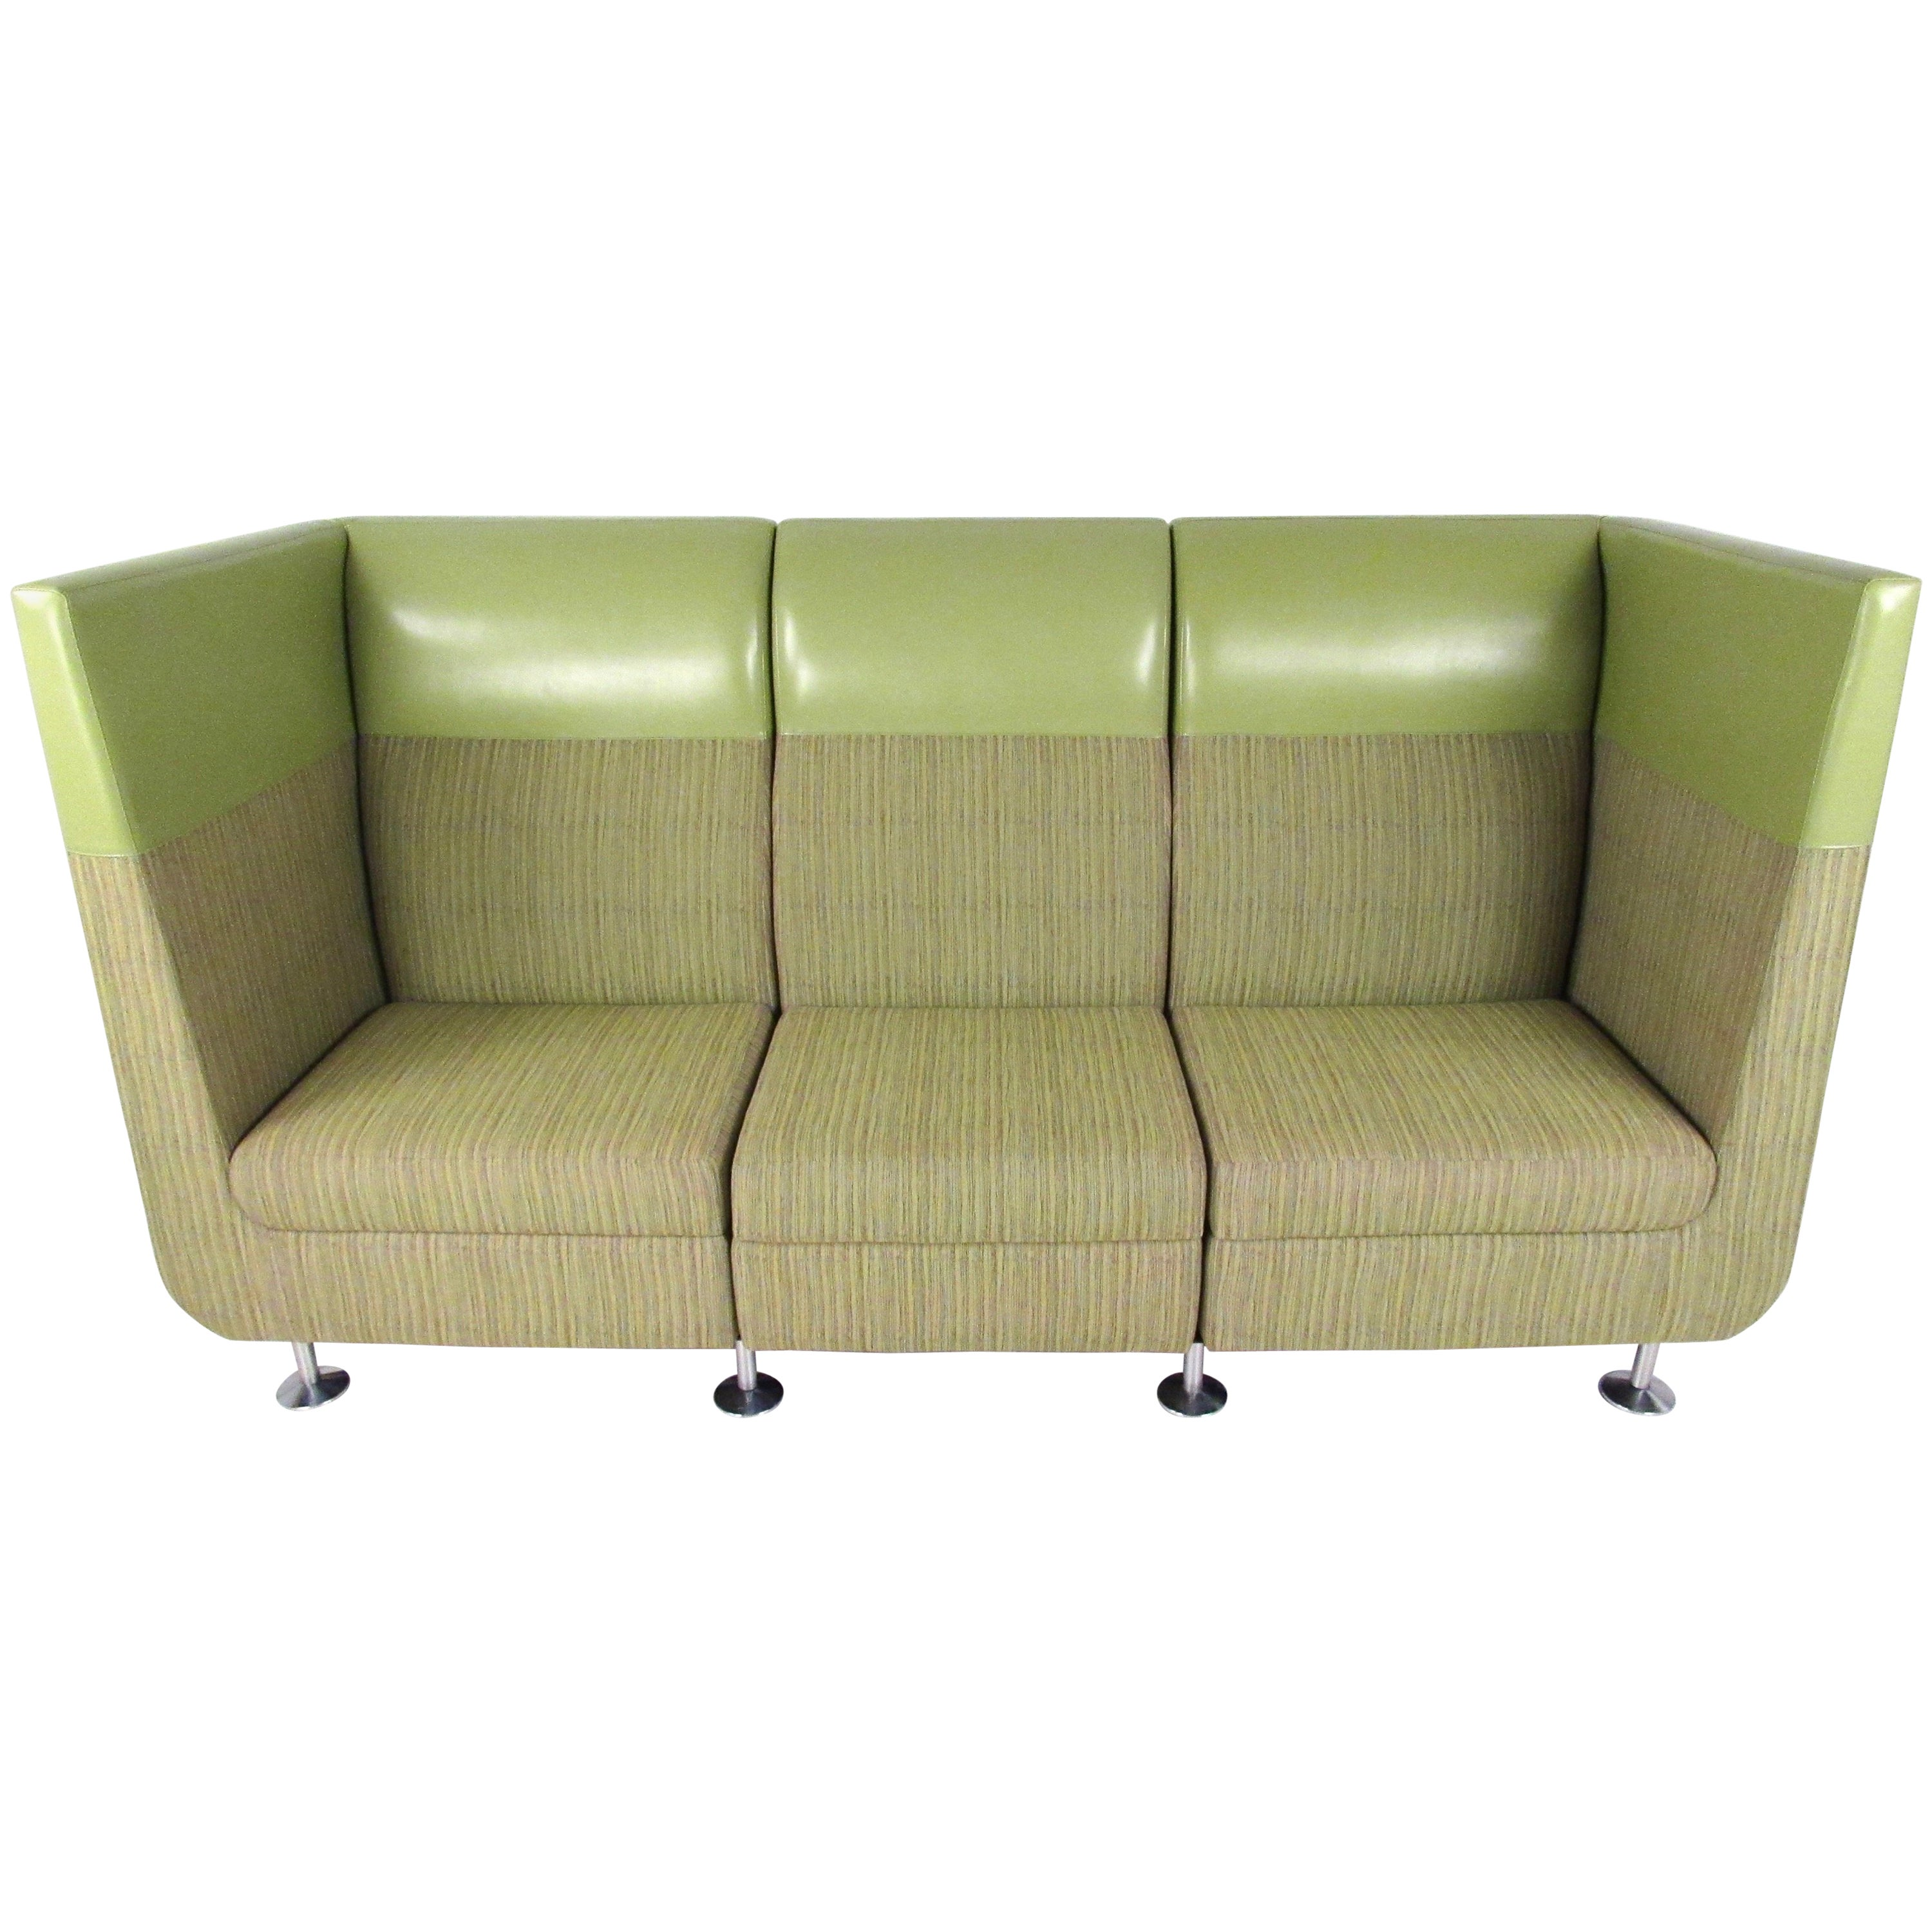 Contemporary modern booth style sofa for sale at 1stdibs